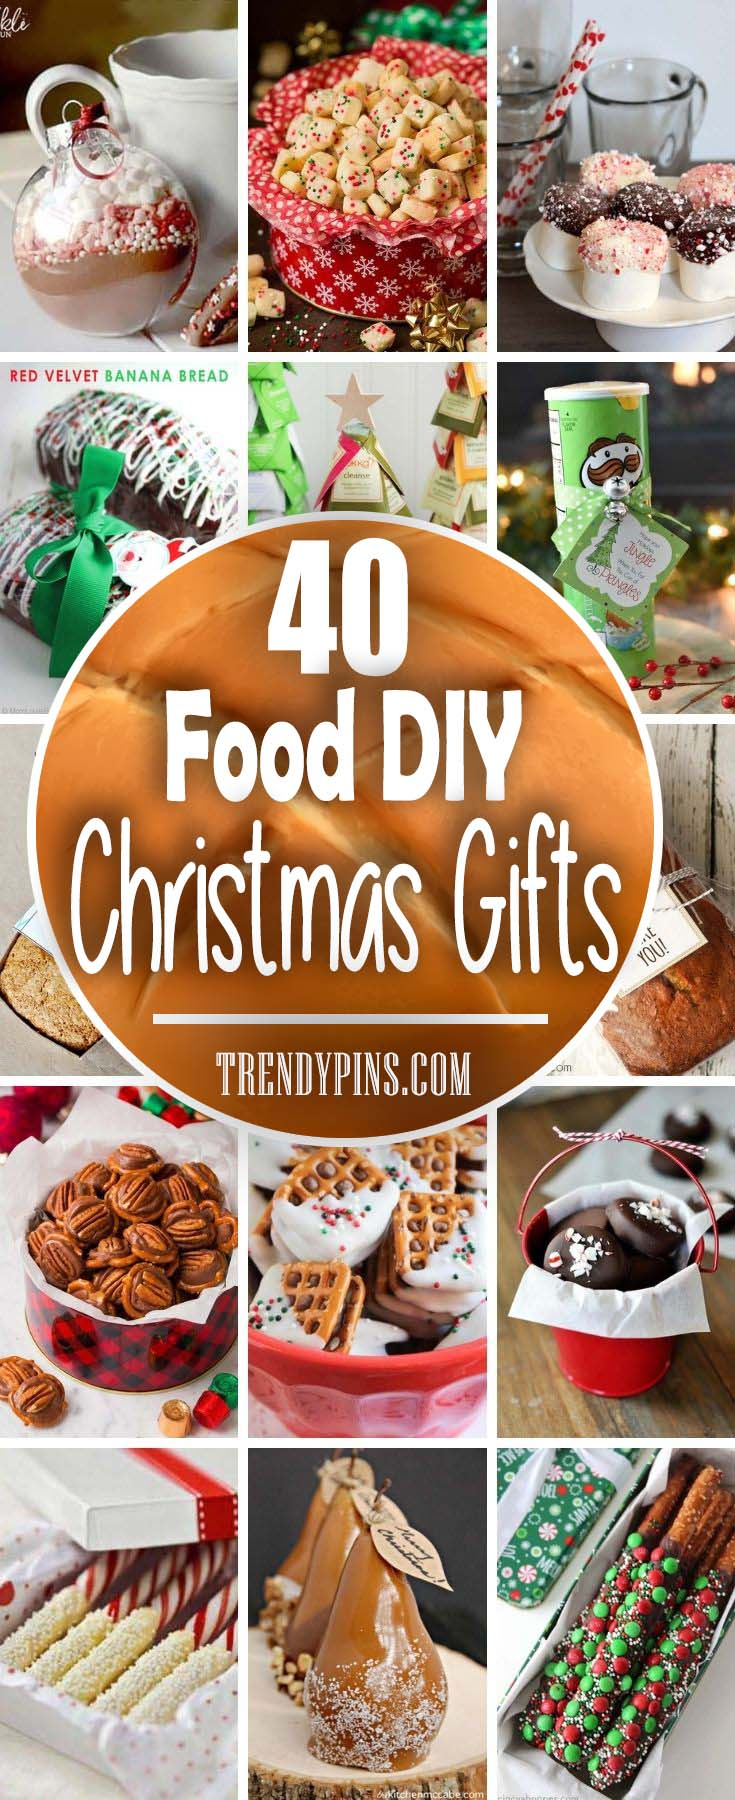 40 Food Diy Christmas Gifts #Christmas #food #gifts #trendypins